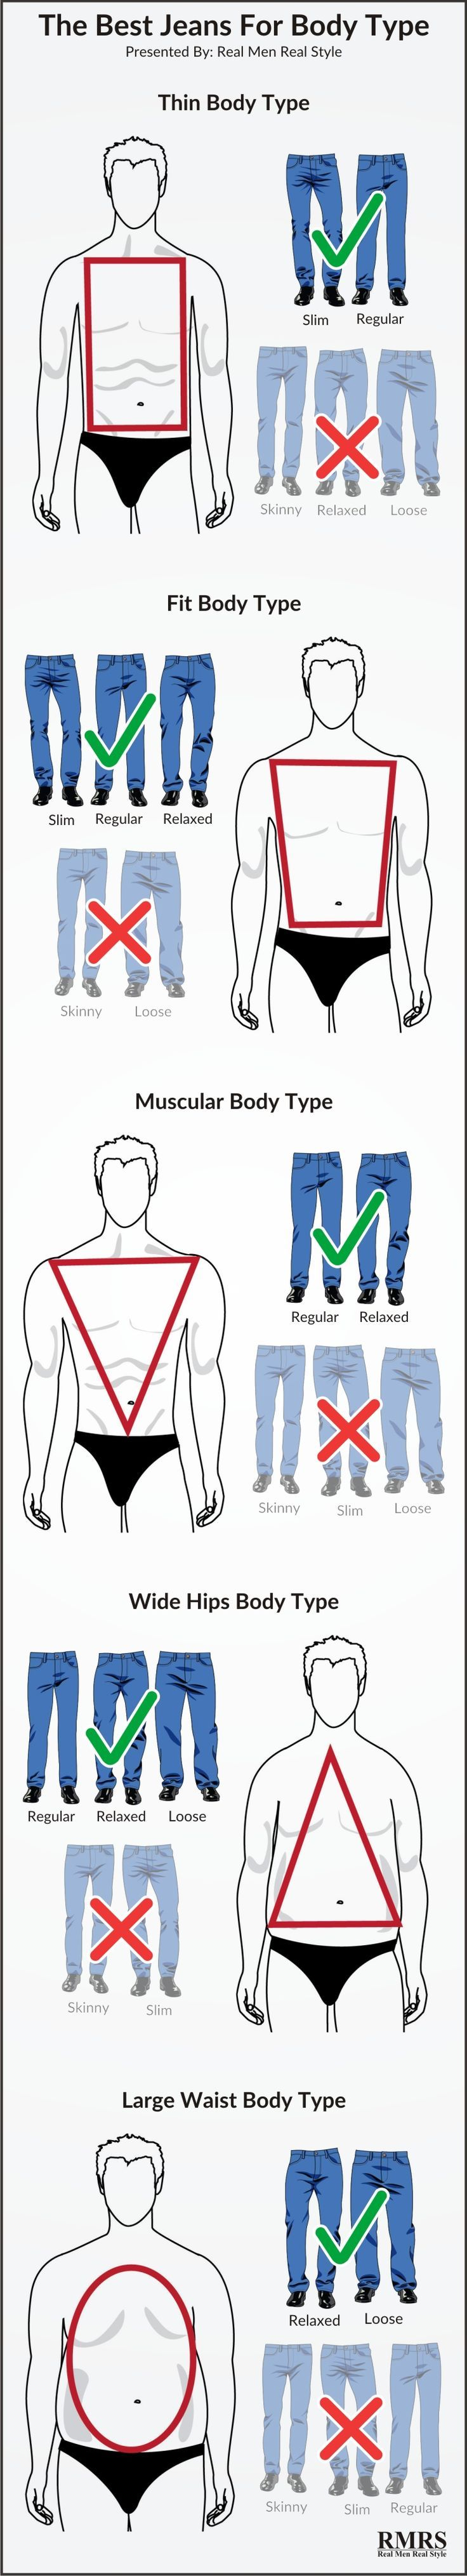 The Best Jeans For Body Type Infographic #guystuff